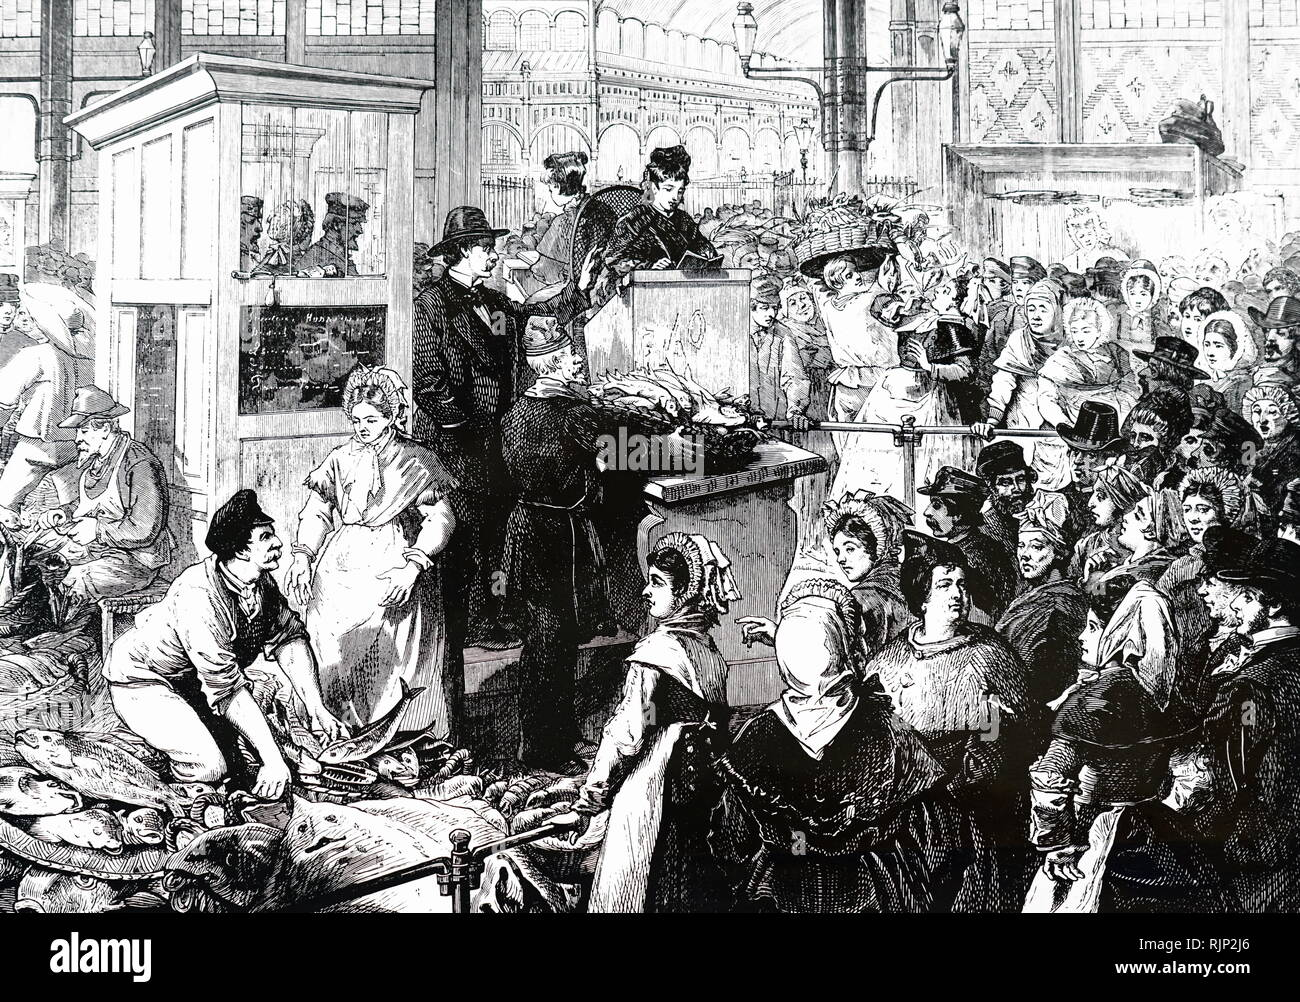 Engraving depicting the Paris fish market during lent. Dated 19th century - Stock Image